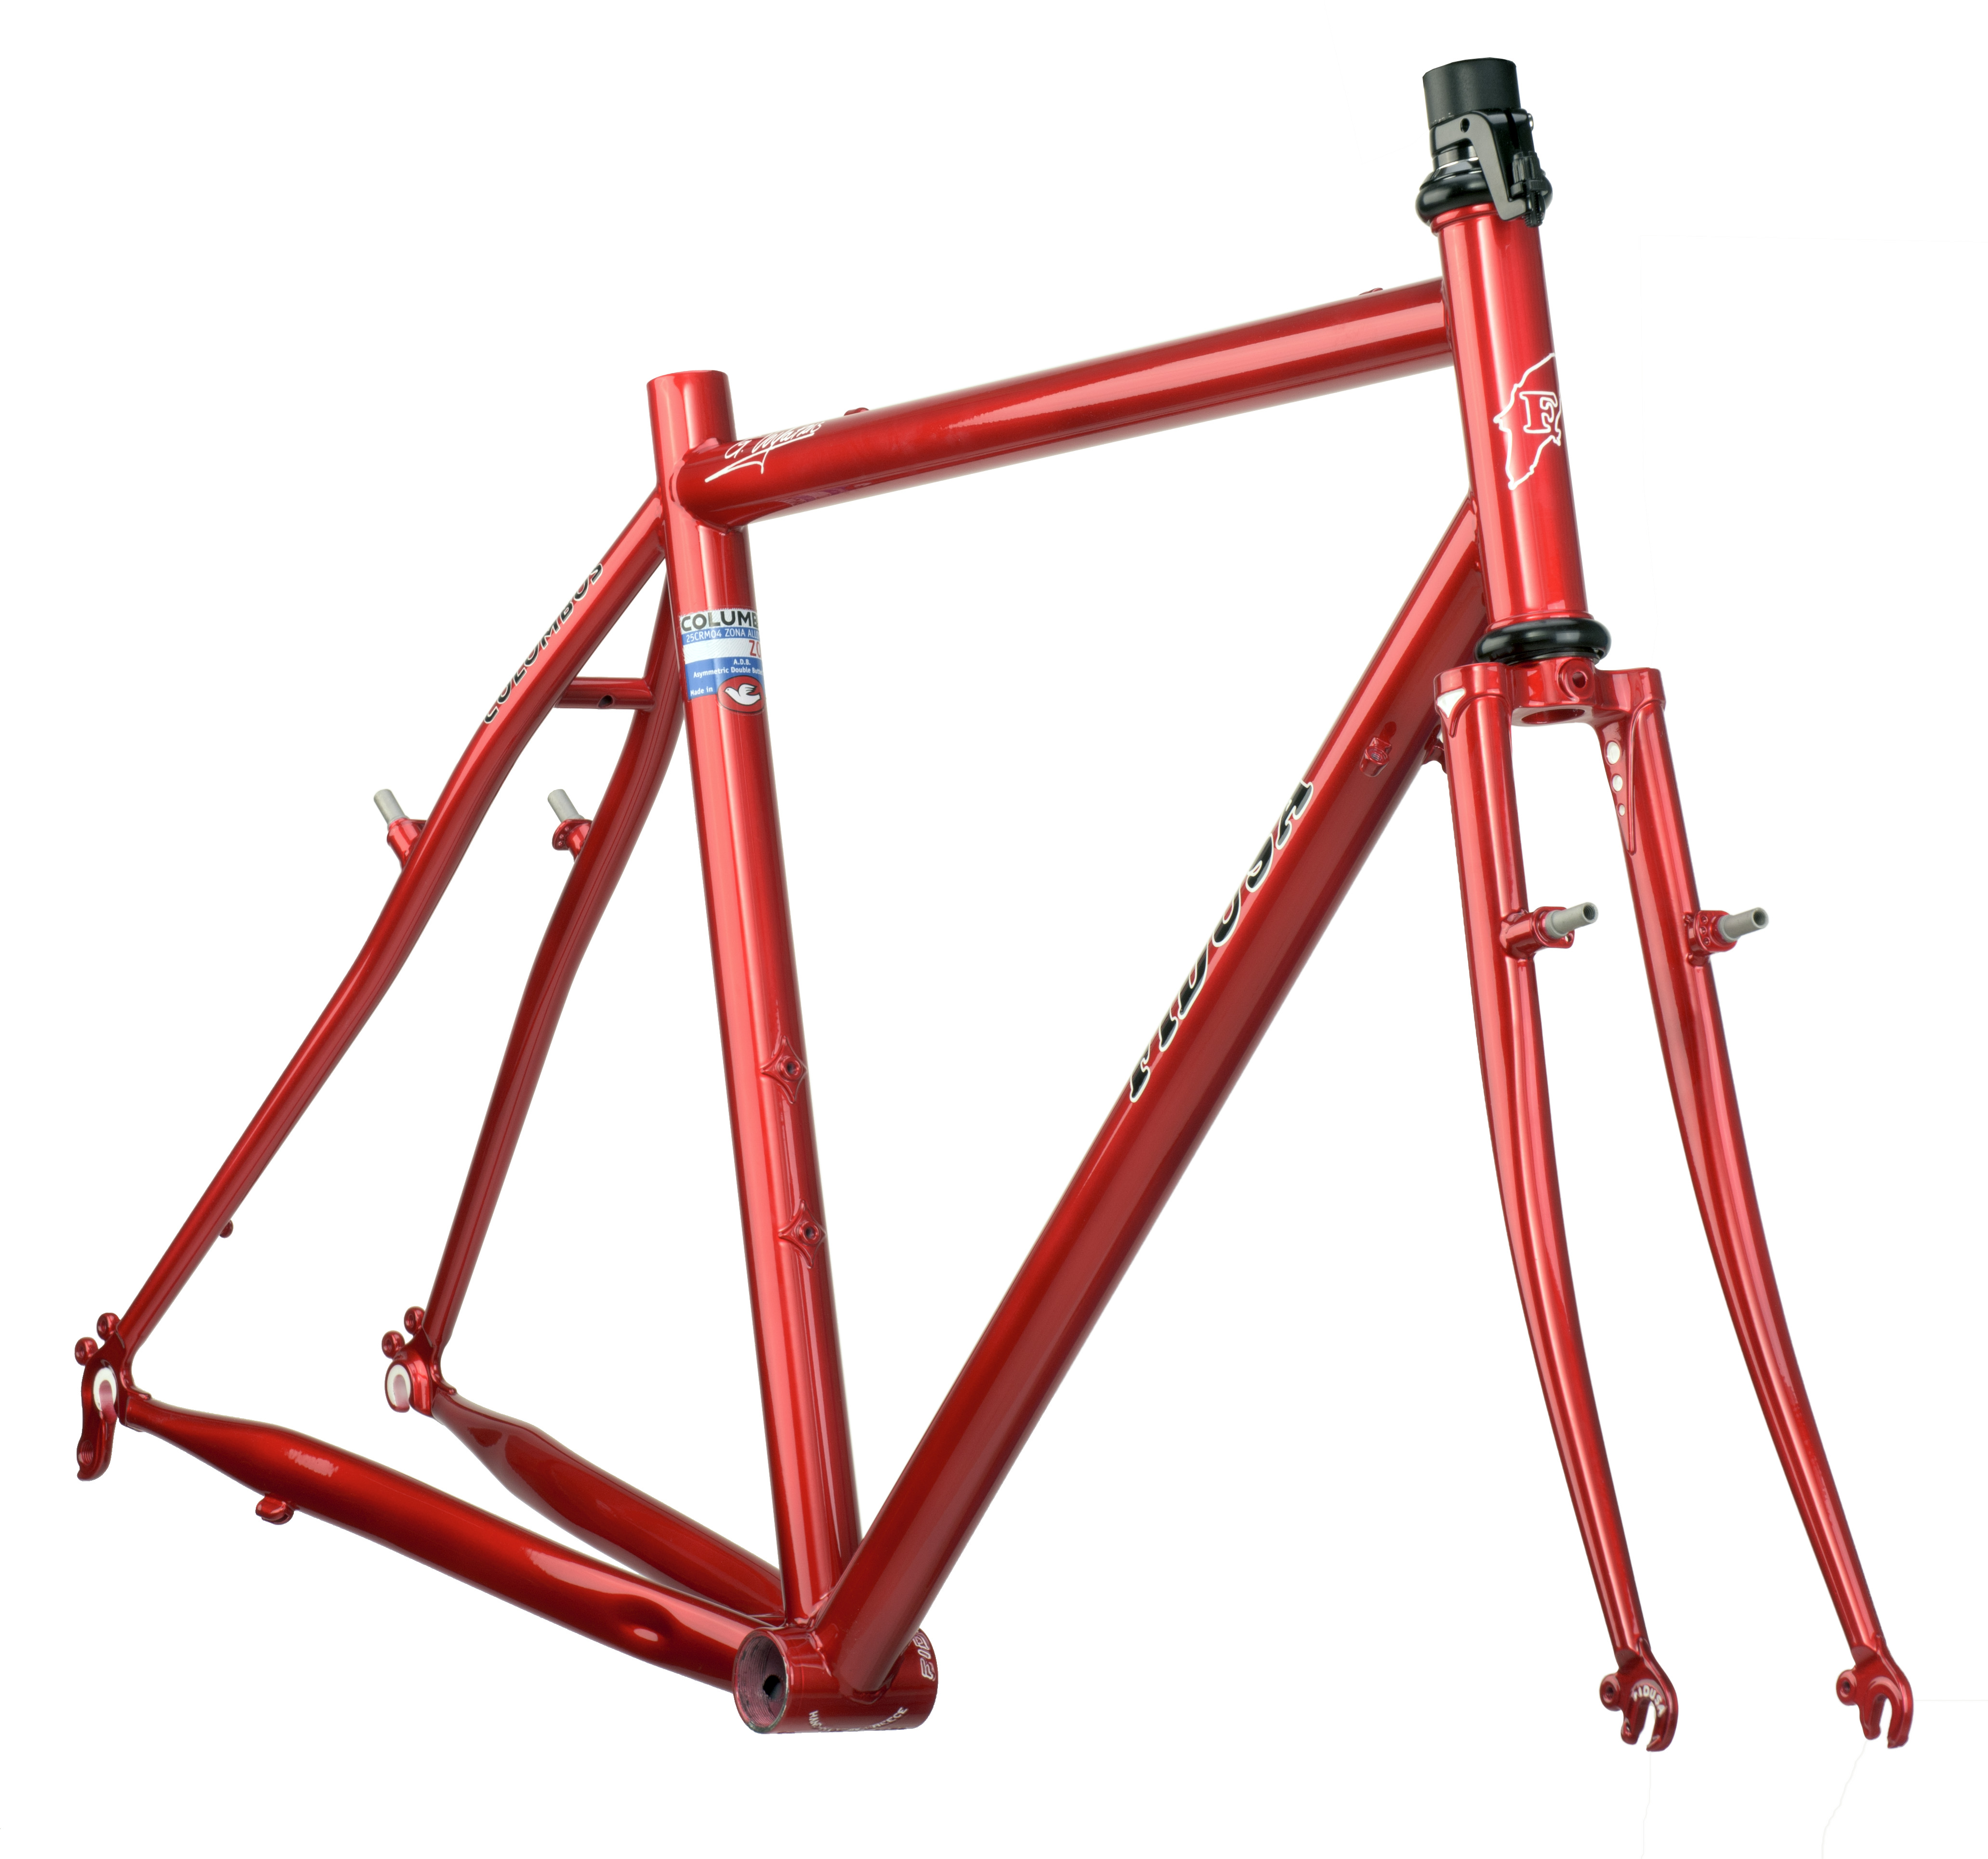 CR-MO-Red-frame-clear-w.o-fenders Ο Touring σκελετός του Παναγιώτη